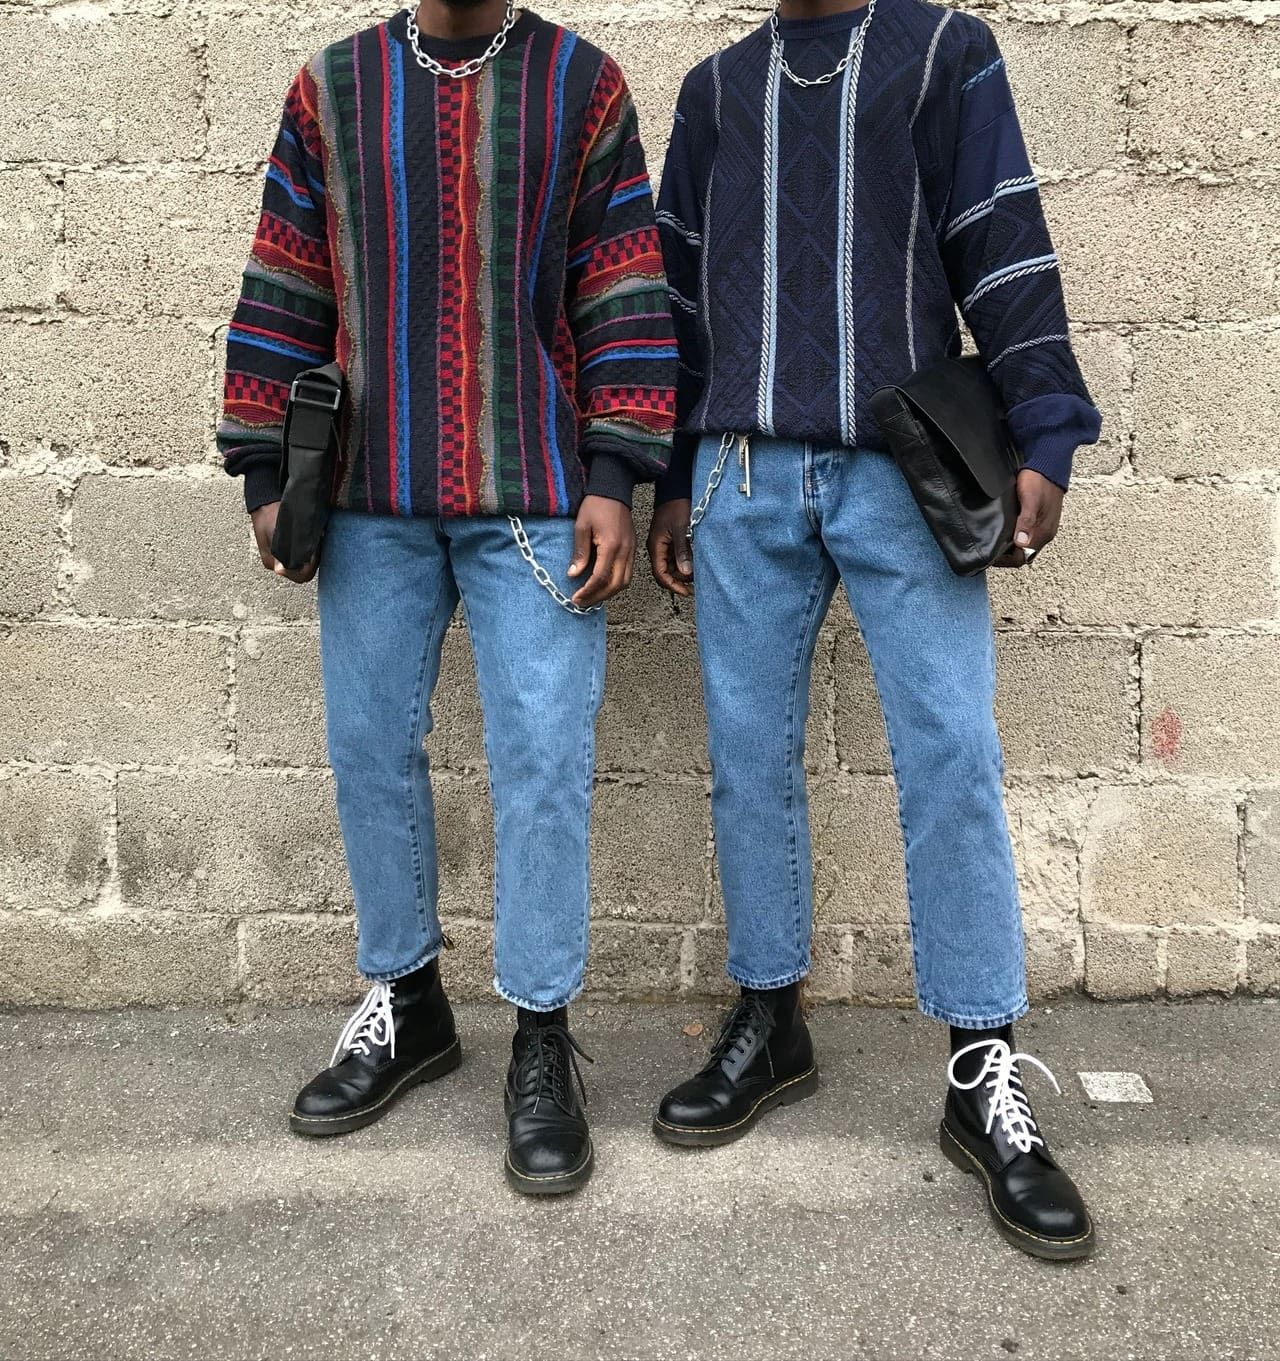 How To Rock 90 S Fashion Men S Outfit Guide 2018 90s Fashion Men 90s Fashion Outfits 90s Fashion Trending